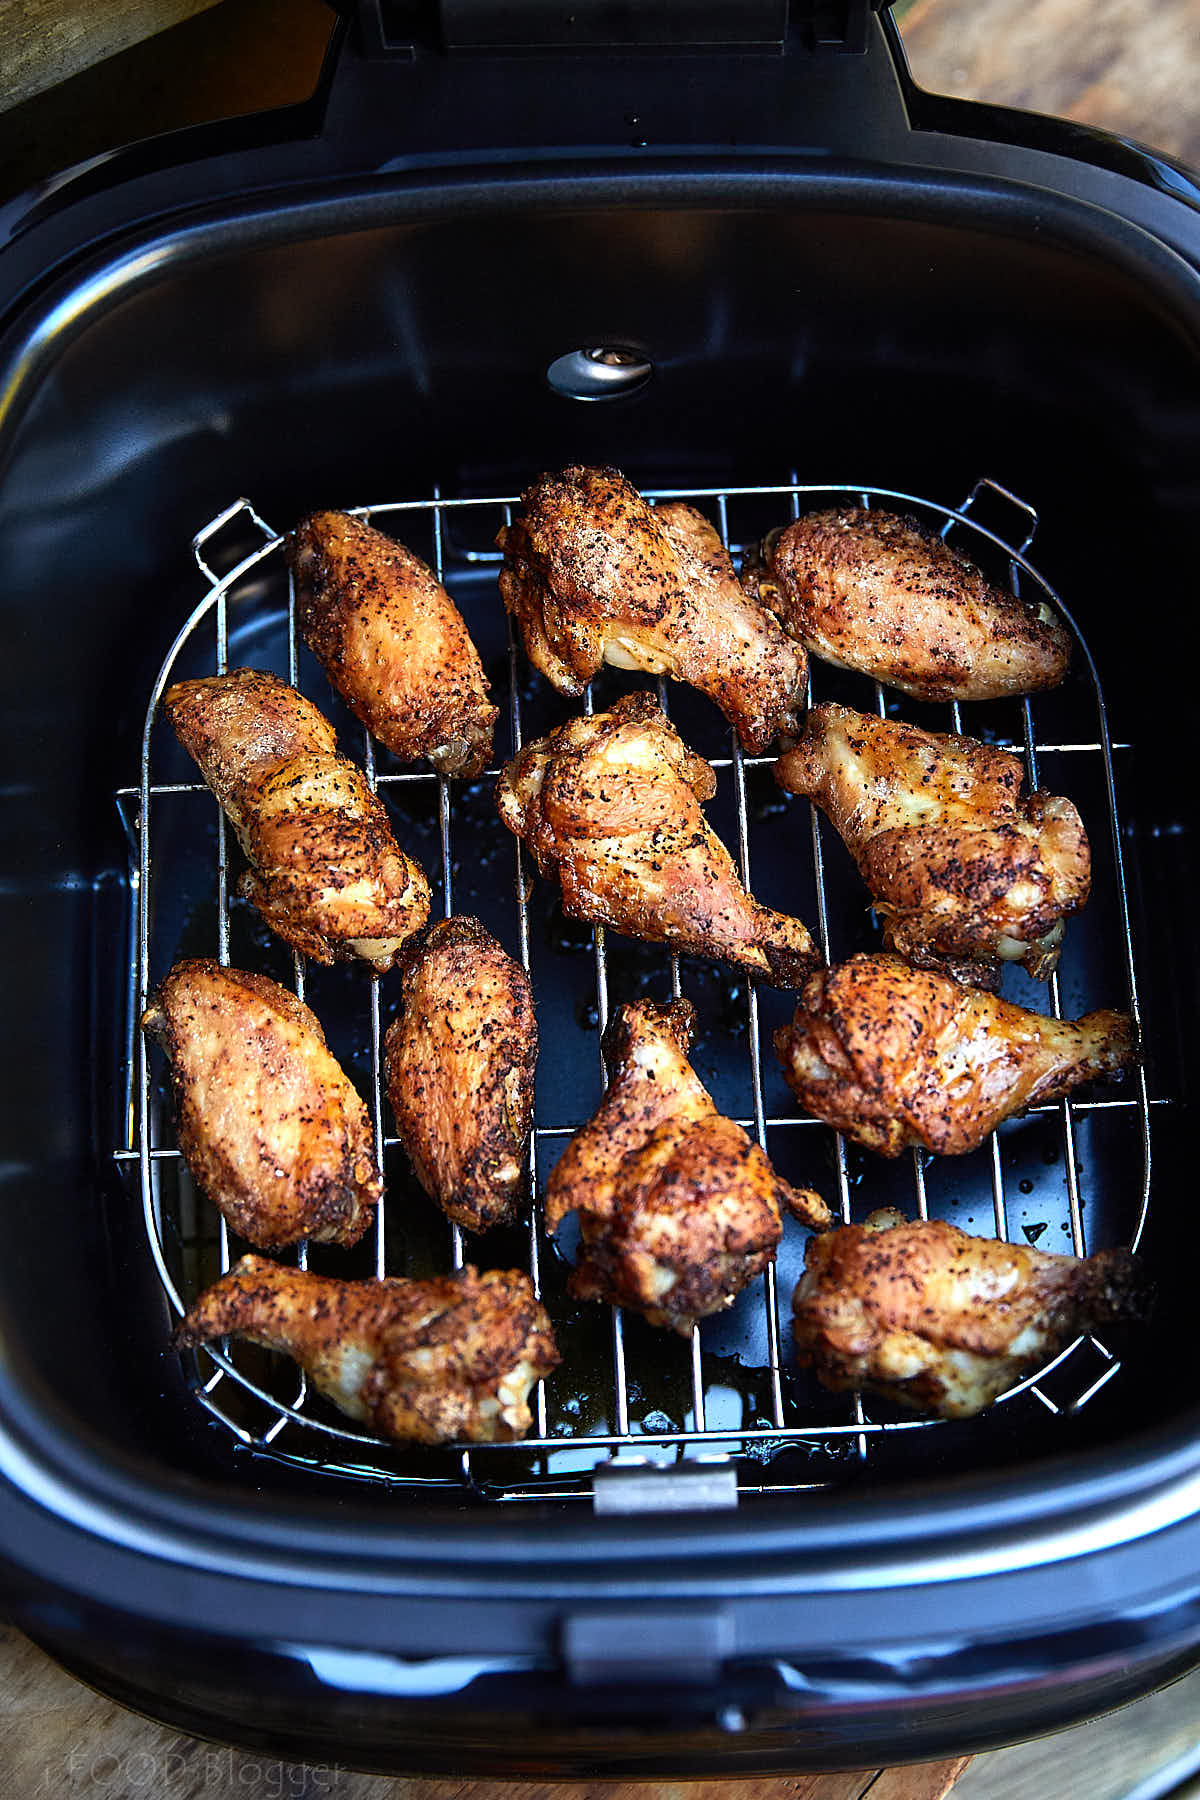 These air fryer chicken wings are extra crispy on the outside and super juicy inside. They are like deep-fried wings, only without a mess and added calories. They taste amazingly good! I guarantee you, these are some of the best chicken wings you can make. These chicken wings are a must try! Oh, and they only take 20 minutes to fry. Great for keto, paleo and low carb diets.| ifoodblogger.com